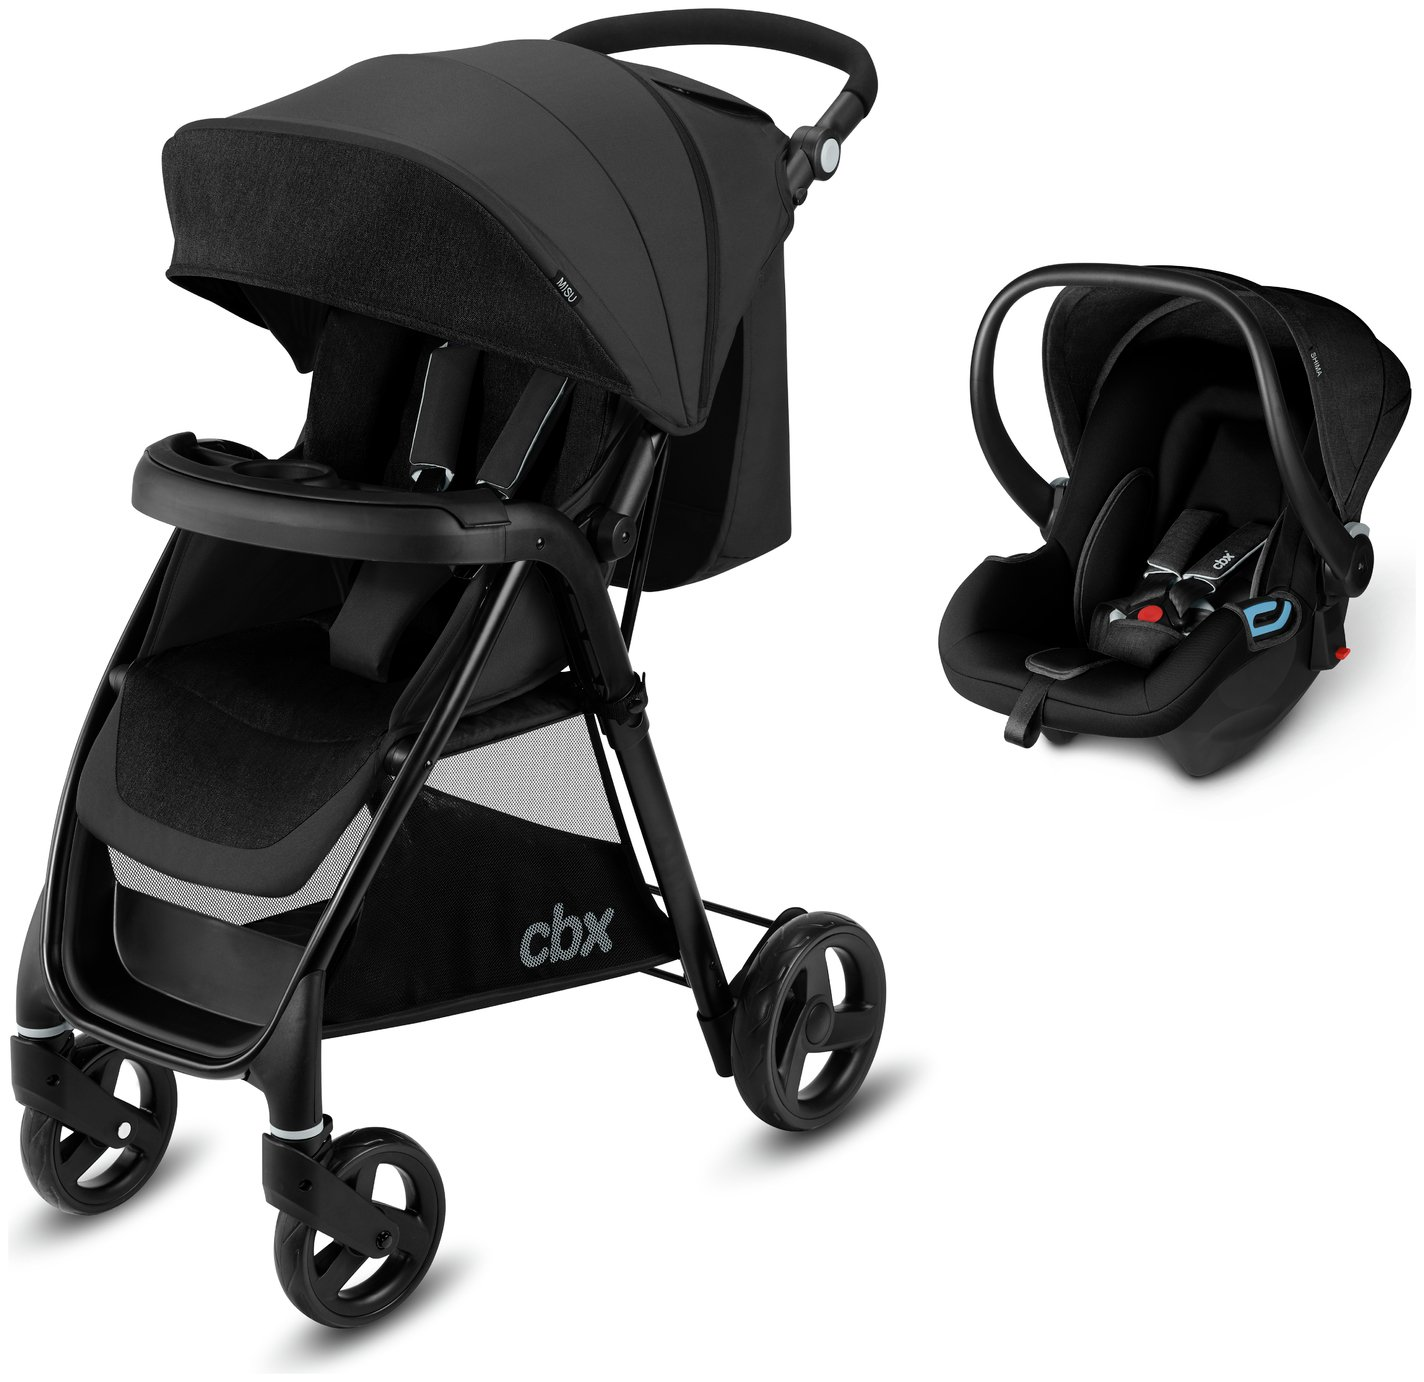 Image of CBX Misu Travel System